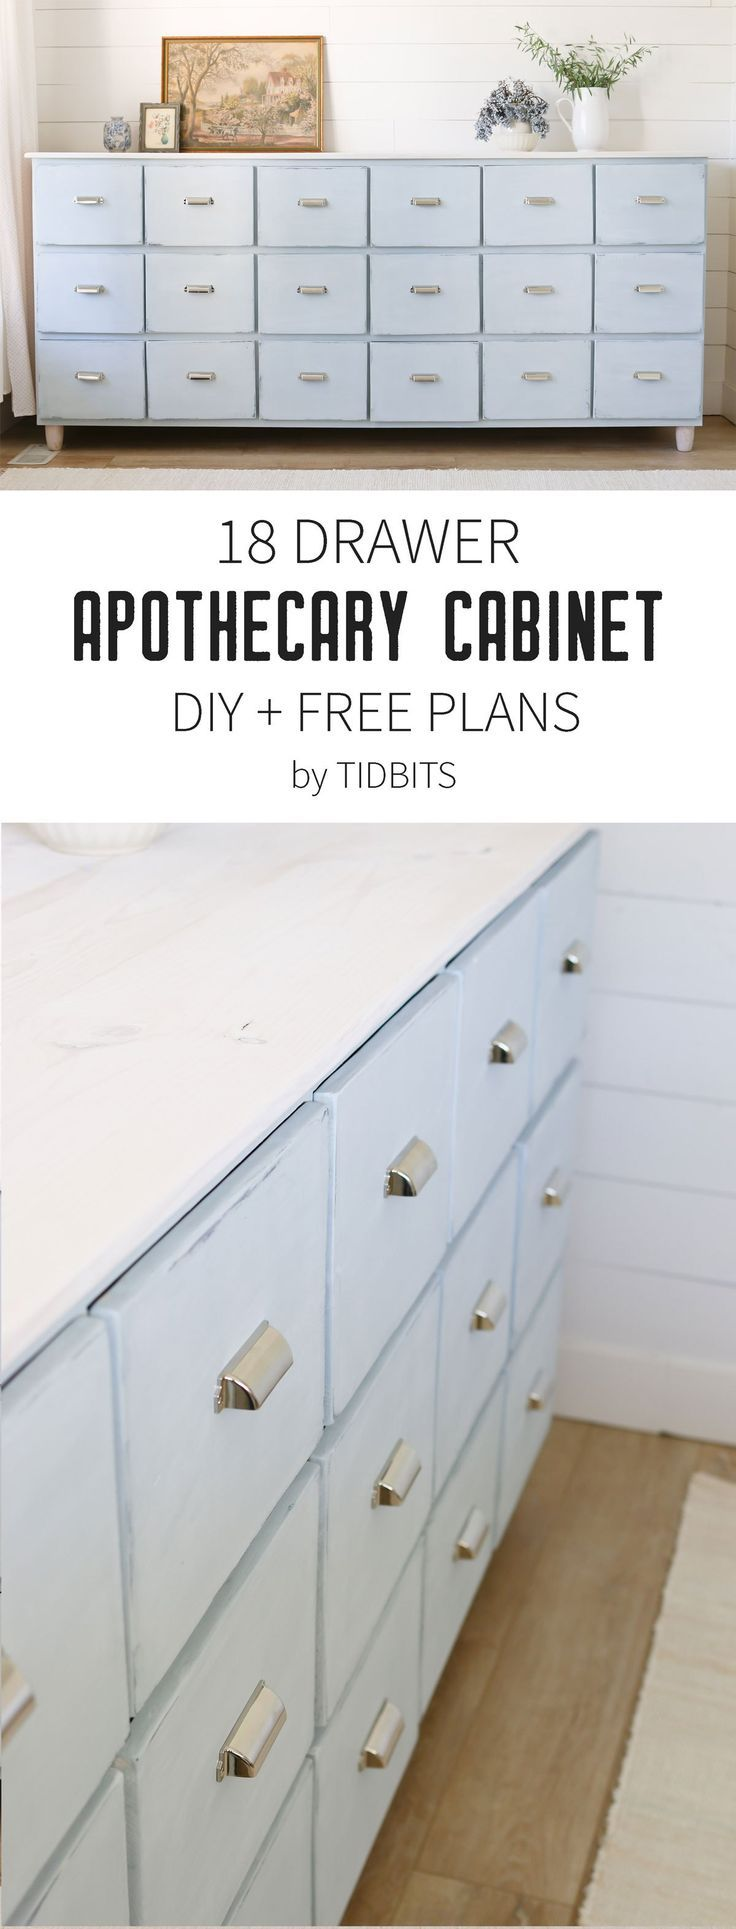 Diy apothecary cabinet apothecary cabinet building plans and